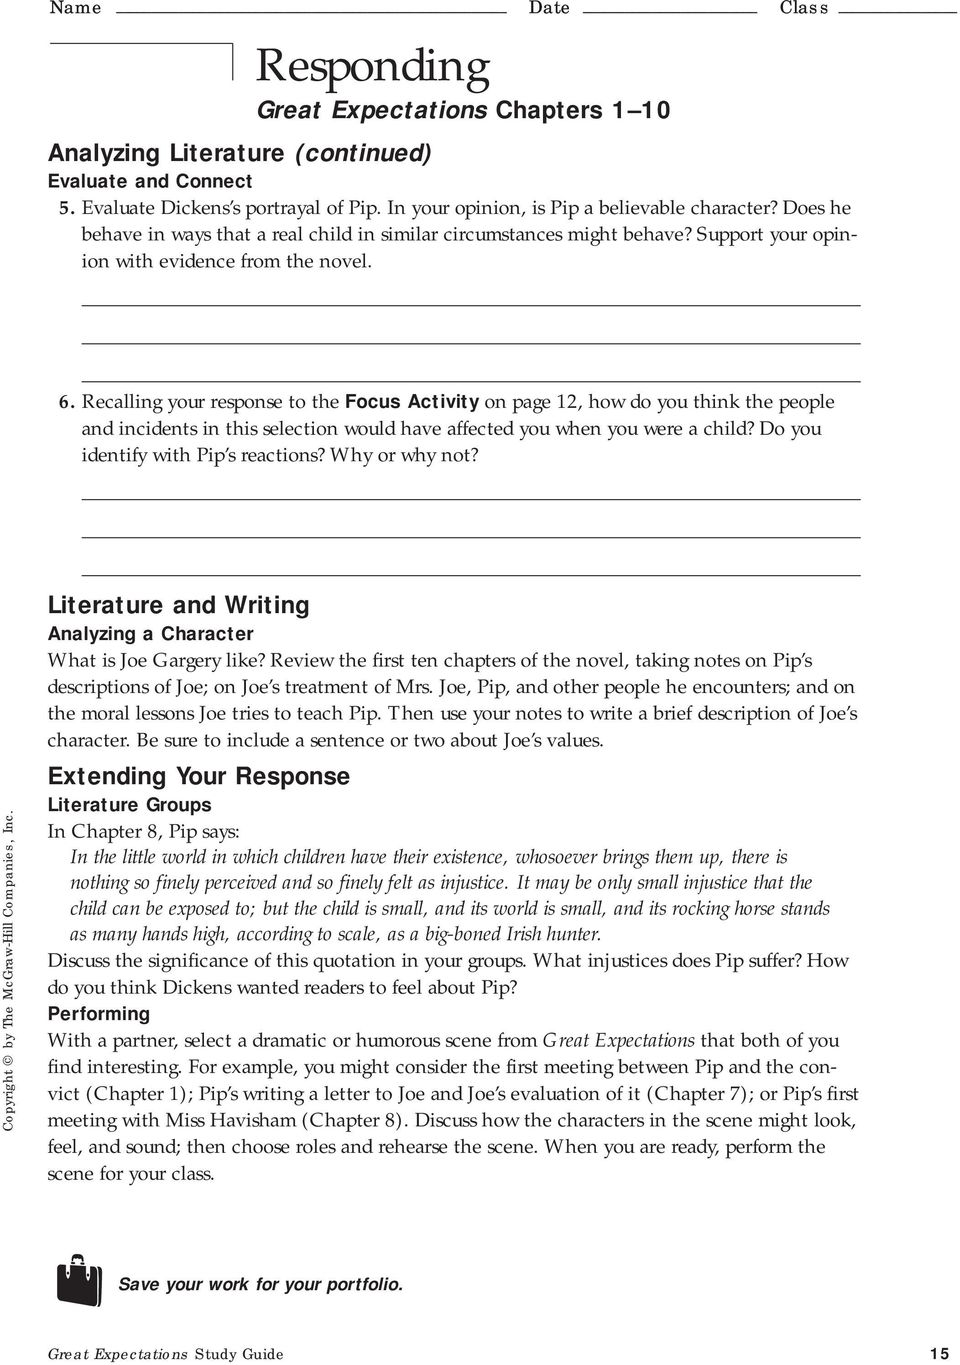 Great Expectations Study Guide 15. Recalling your response to the Focus  Activity on page 12, how do you think the